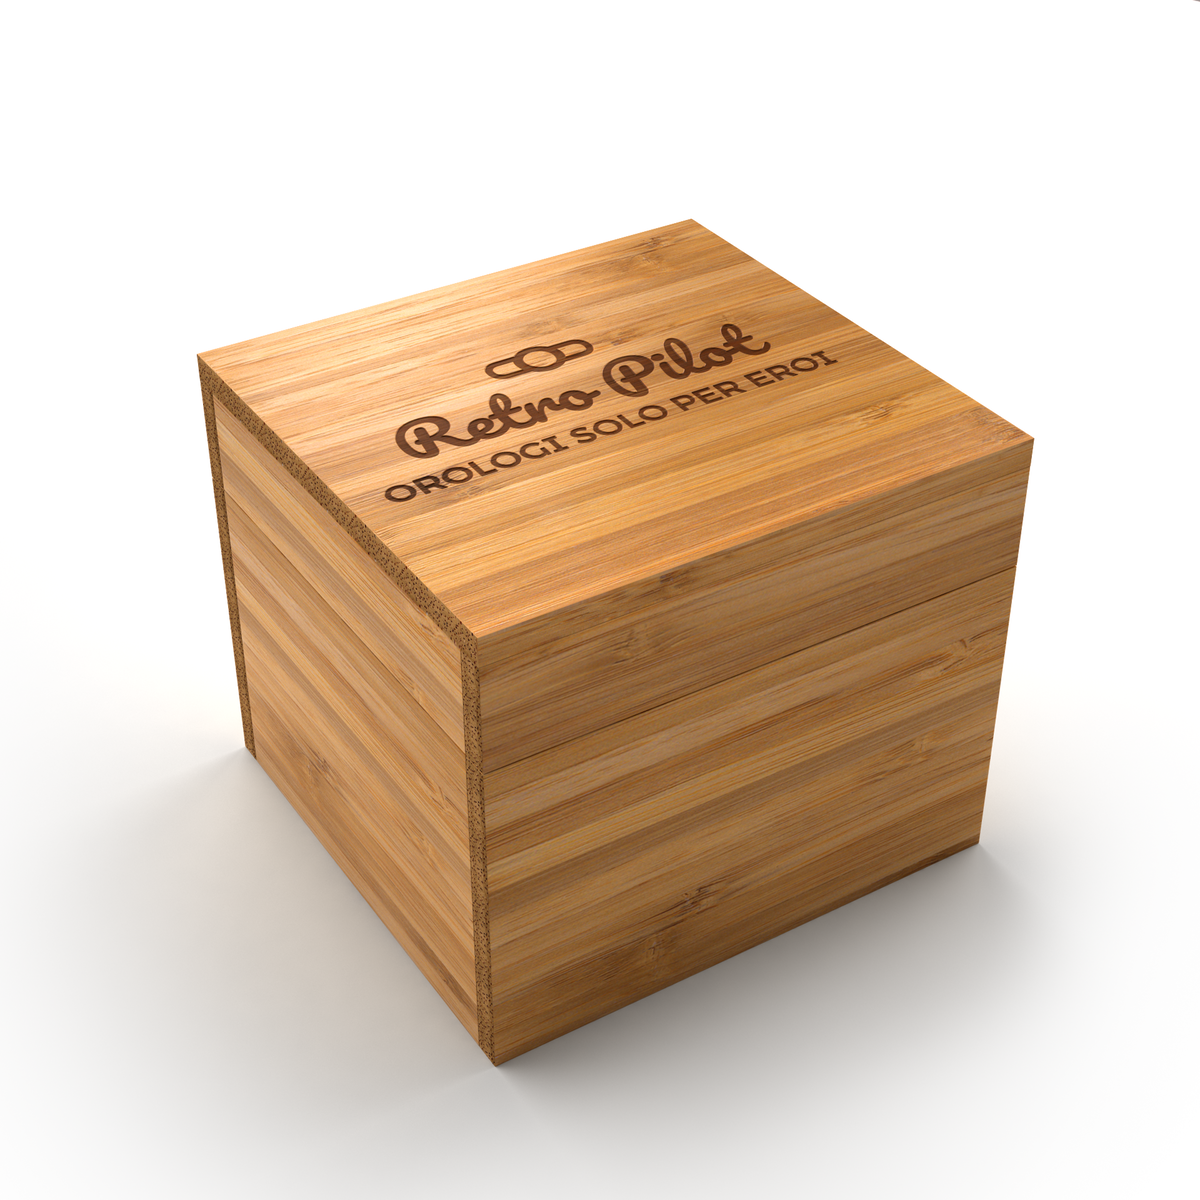 Wooden Watch Box for Bussora